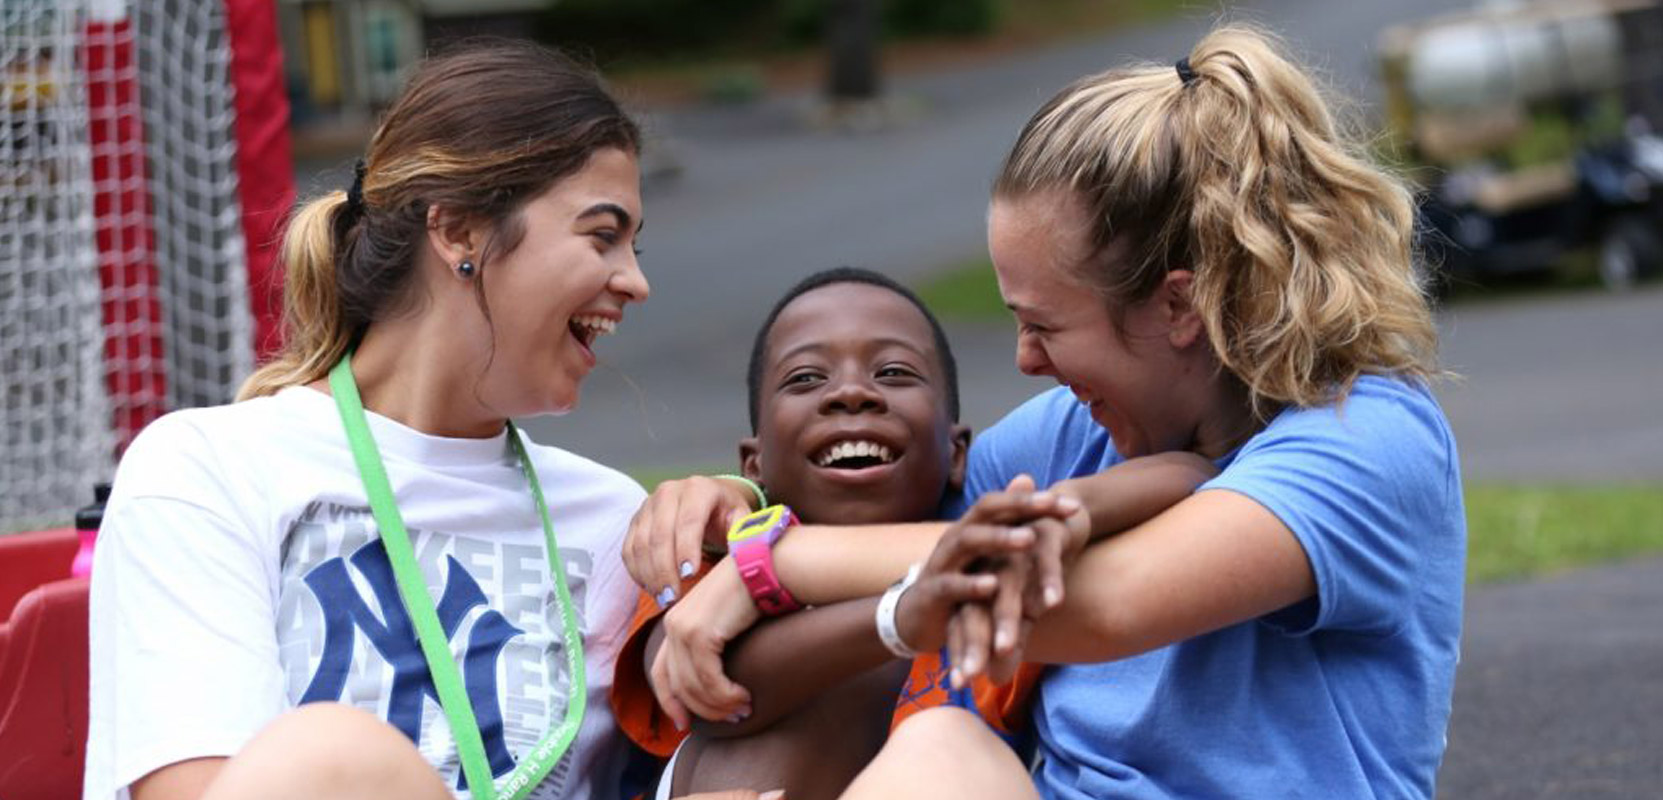 counselors and camper laughing